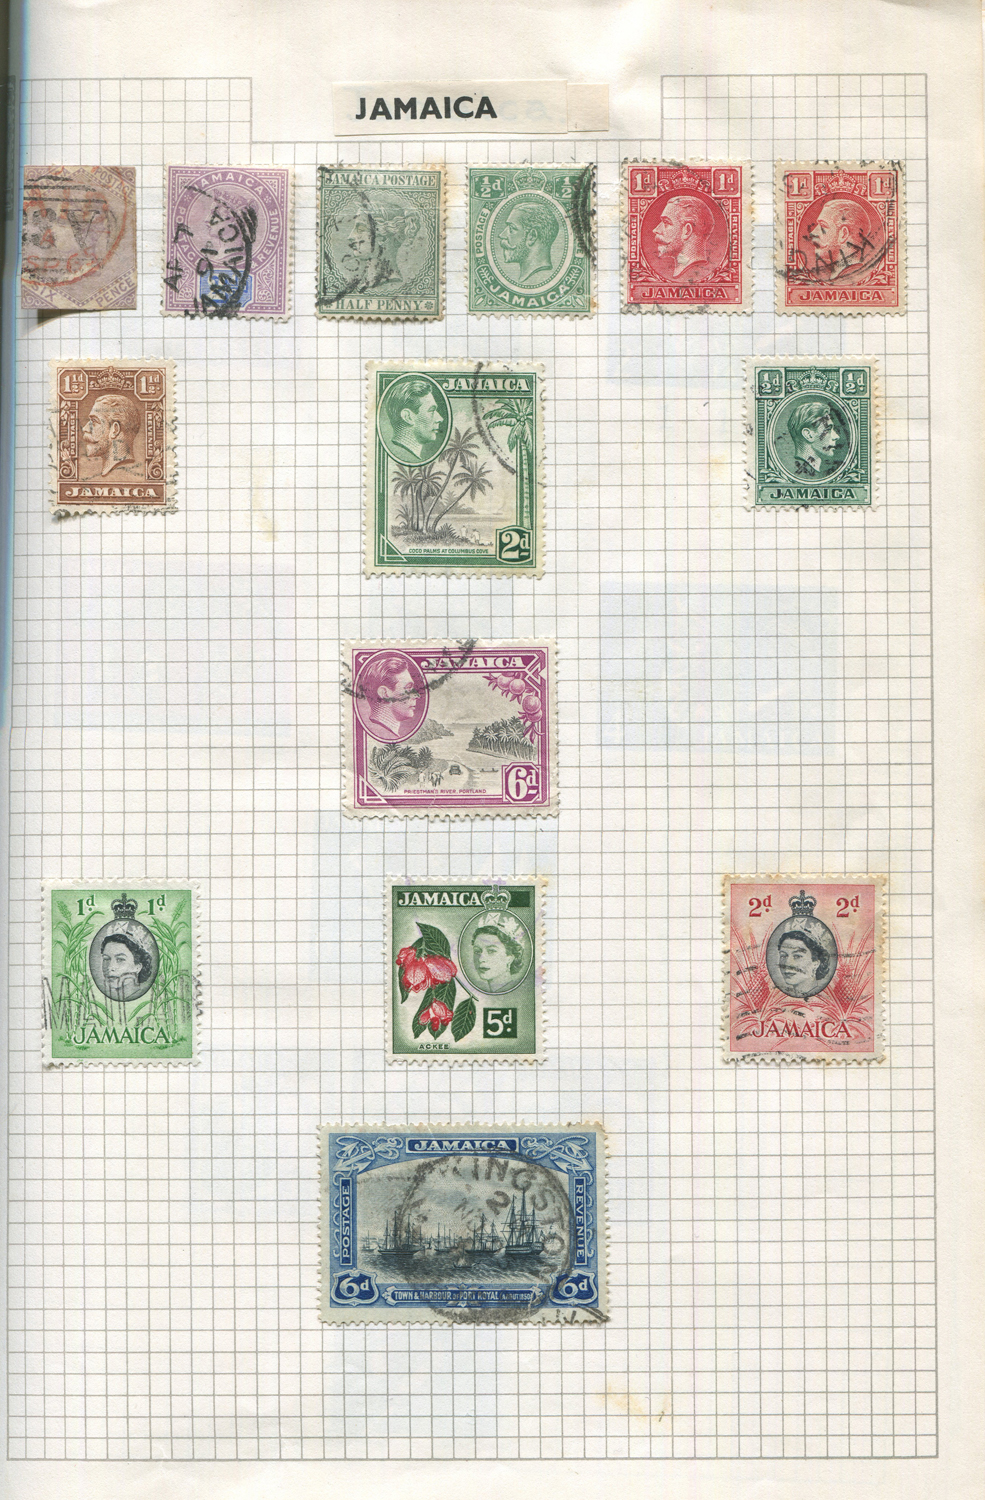 Lot 3055 - A collection of world stamps in albums and loose in packets.Buyer's Premium 29.4% (including VAT @